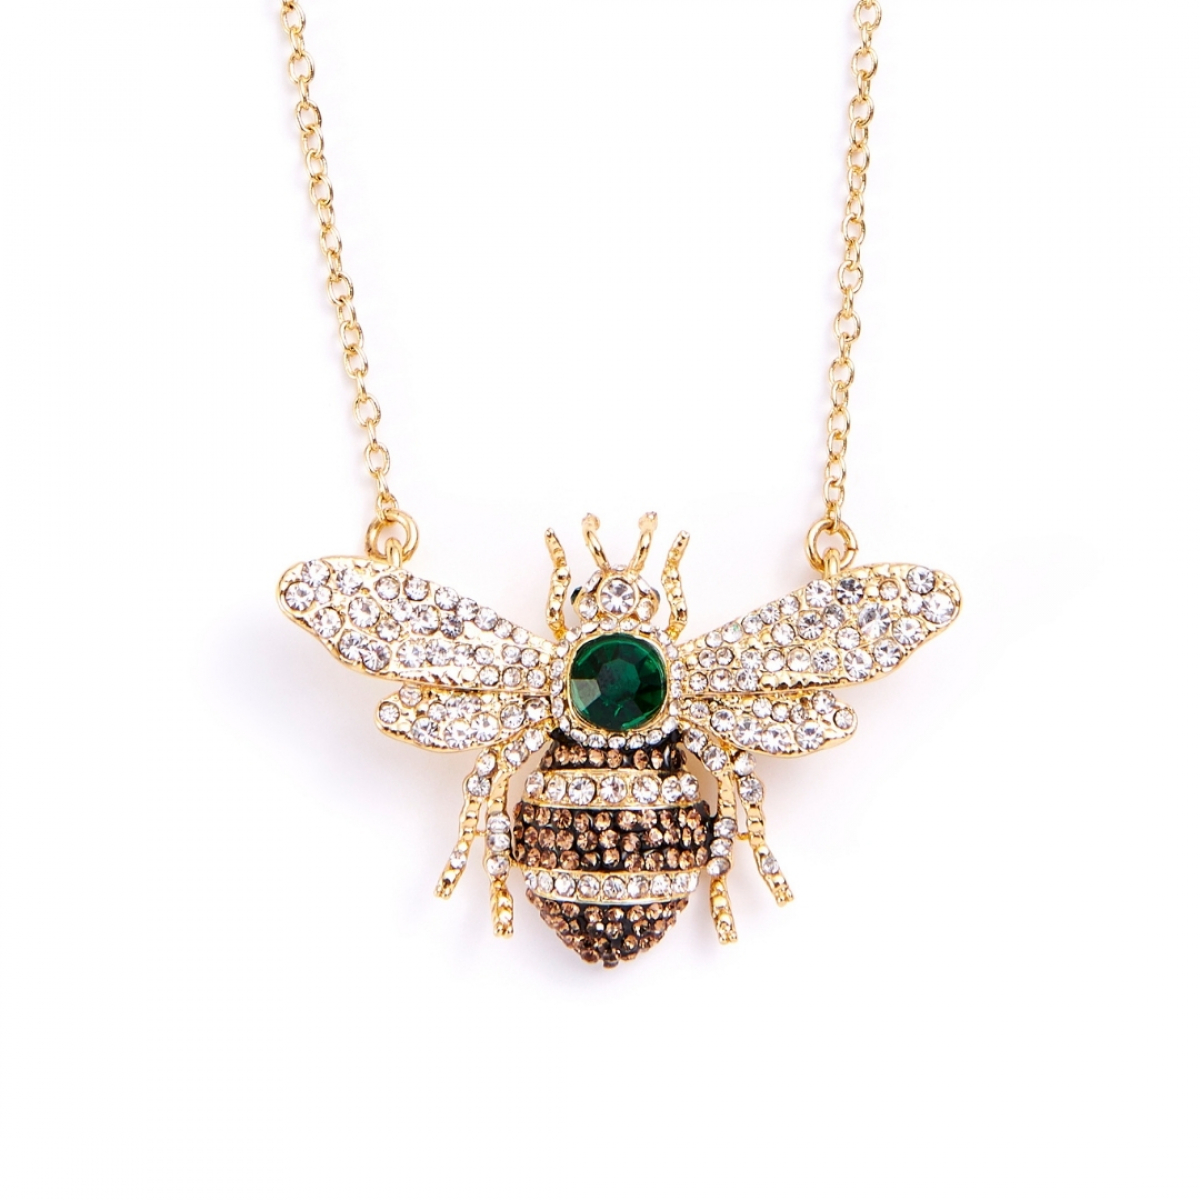 25 Year Anniversary Queen Bee Necklace